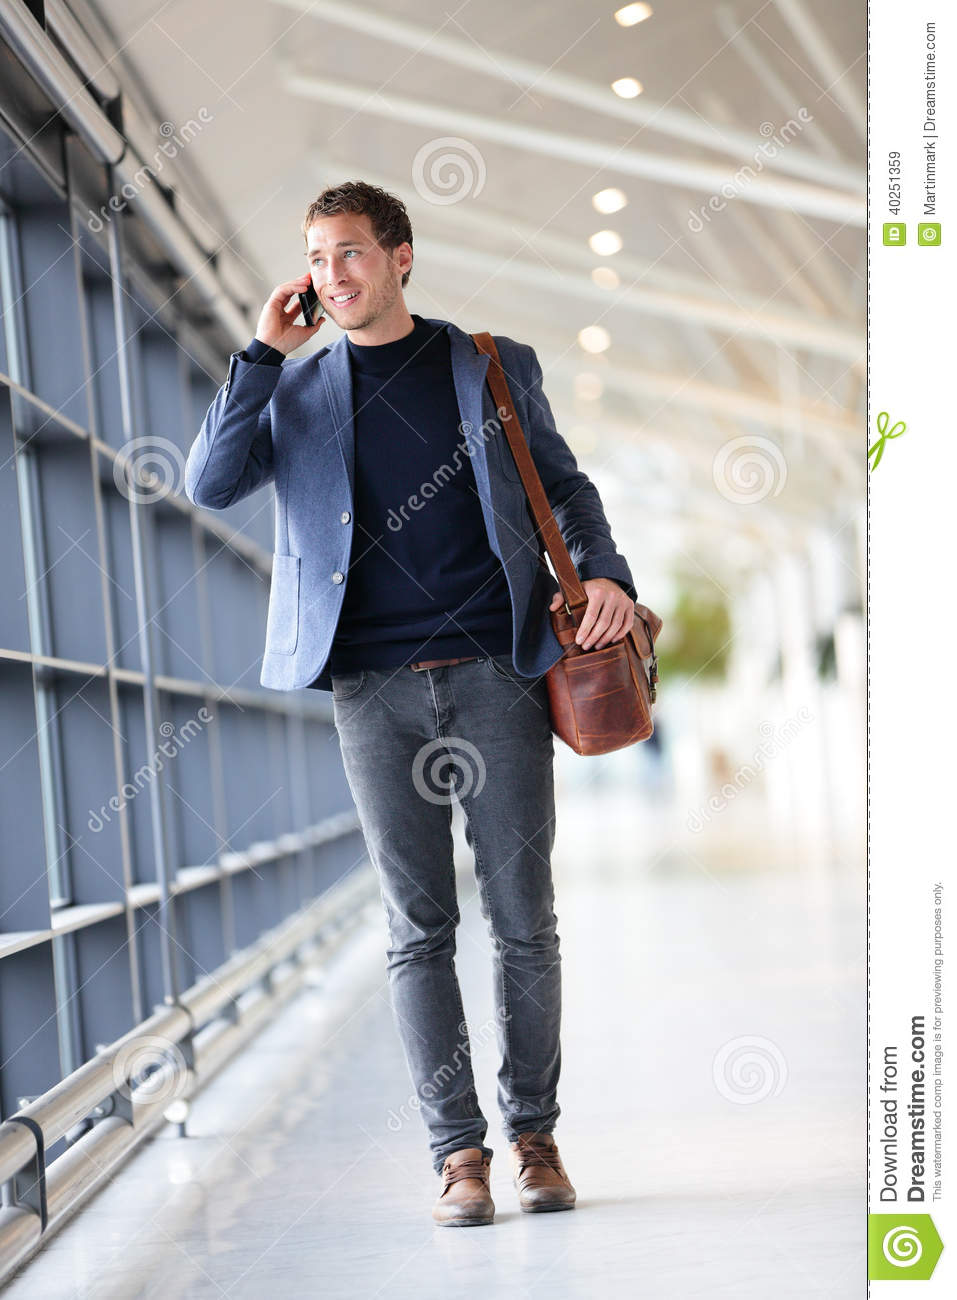 urban-business-man-talking-smart-phone-traveling-walking-full-body-length-inside-airport-casual-young-businessman-wearing-40251359.jpg